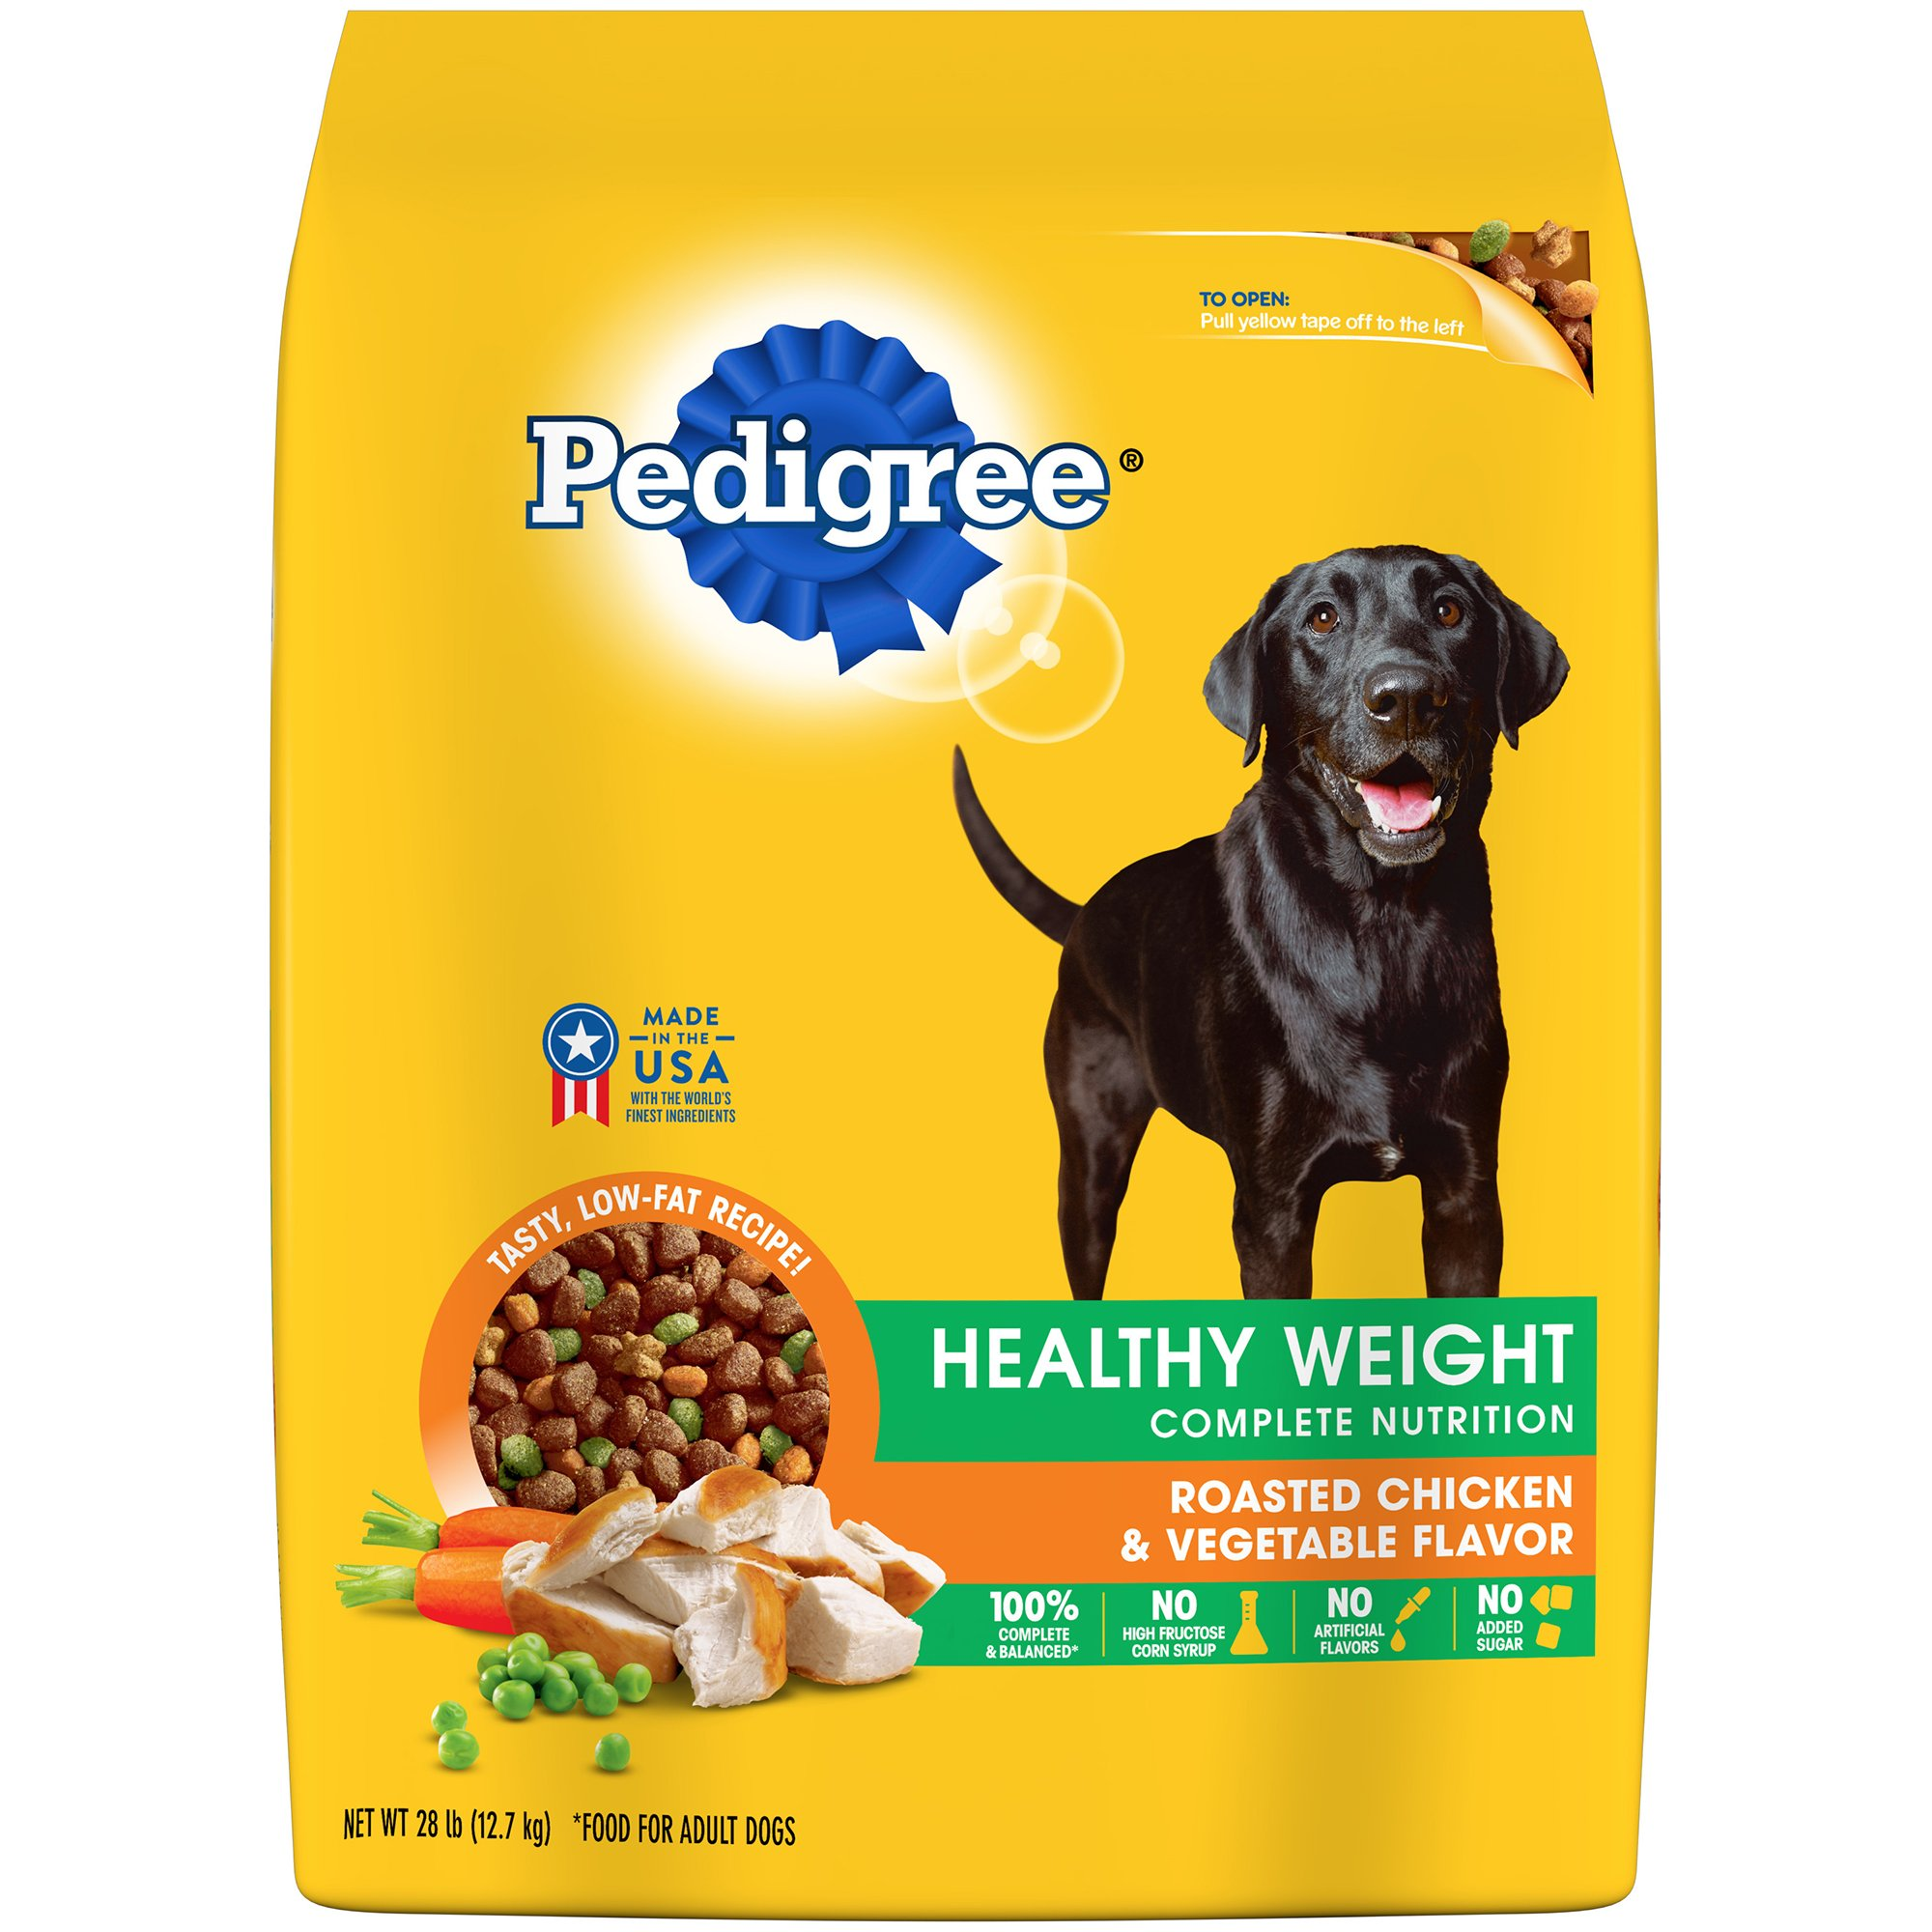 Pedigree Healthy Weight Adult Dry Dog Food Roasted Chicken & Vegetable Flavor, 28 Lb. Bag (Discontinued By Manufacturer) by Pedigree